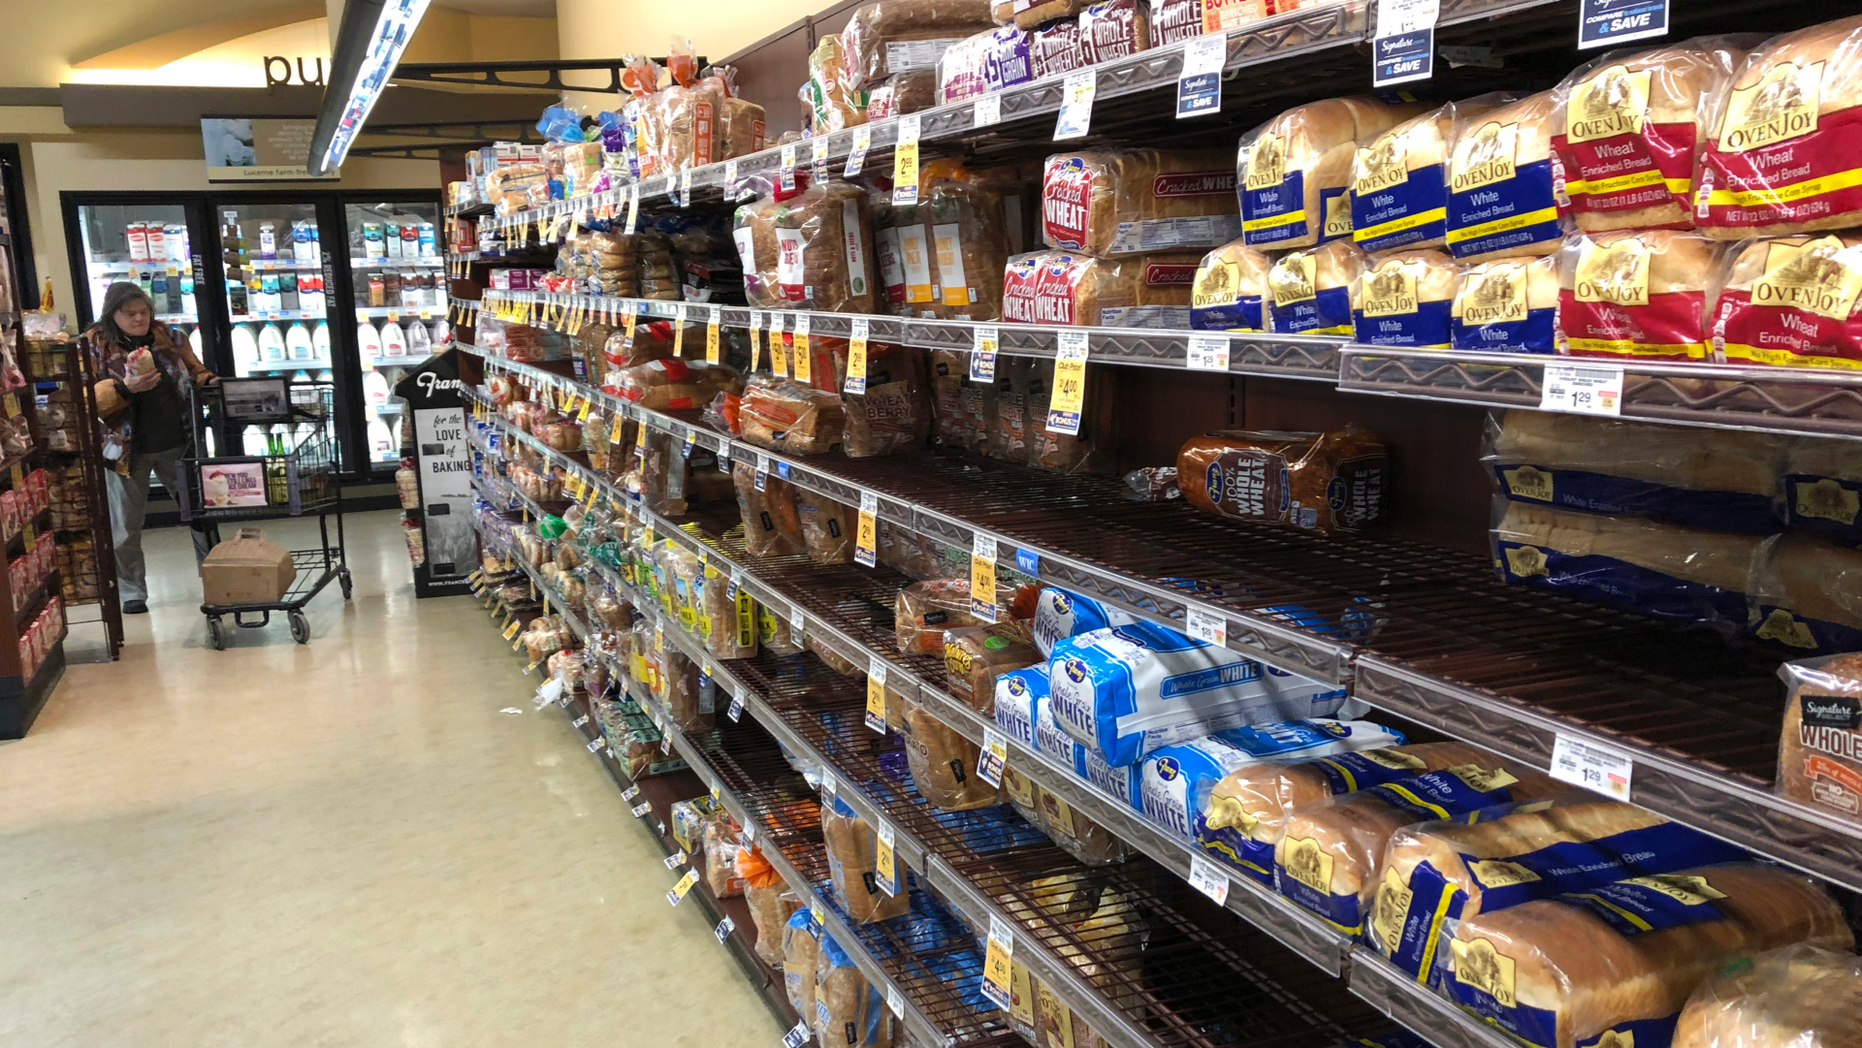 FILE- This Feb. 7, 2019, file photo shows the bread section of a Safeway store in Tacoma, Wash. On Wednesday, Feb. 13, 2019, the Labor Department reports on U.S. consumer prices for January. (AP Photo/Ted S. Warren, File)